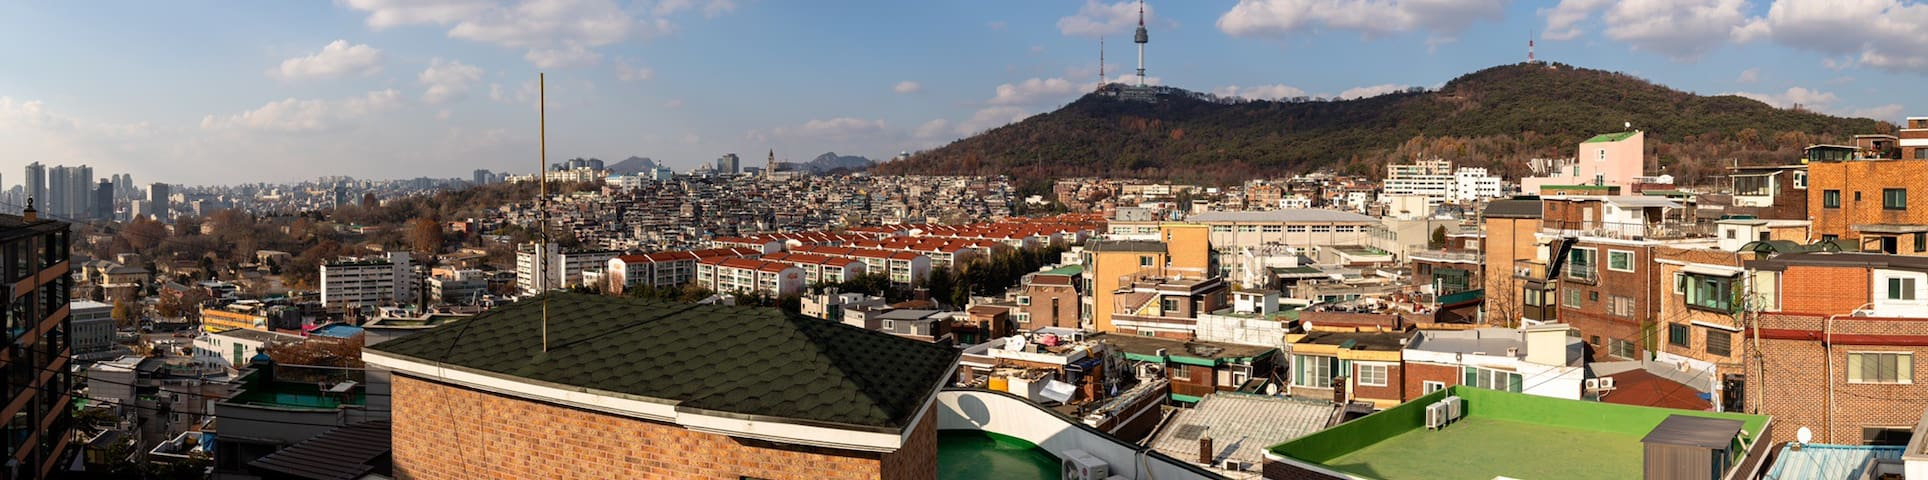 Namsan View in the Center of Seoul (Itaewon)